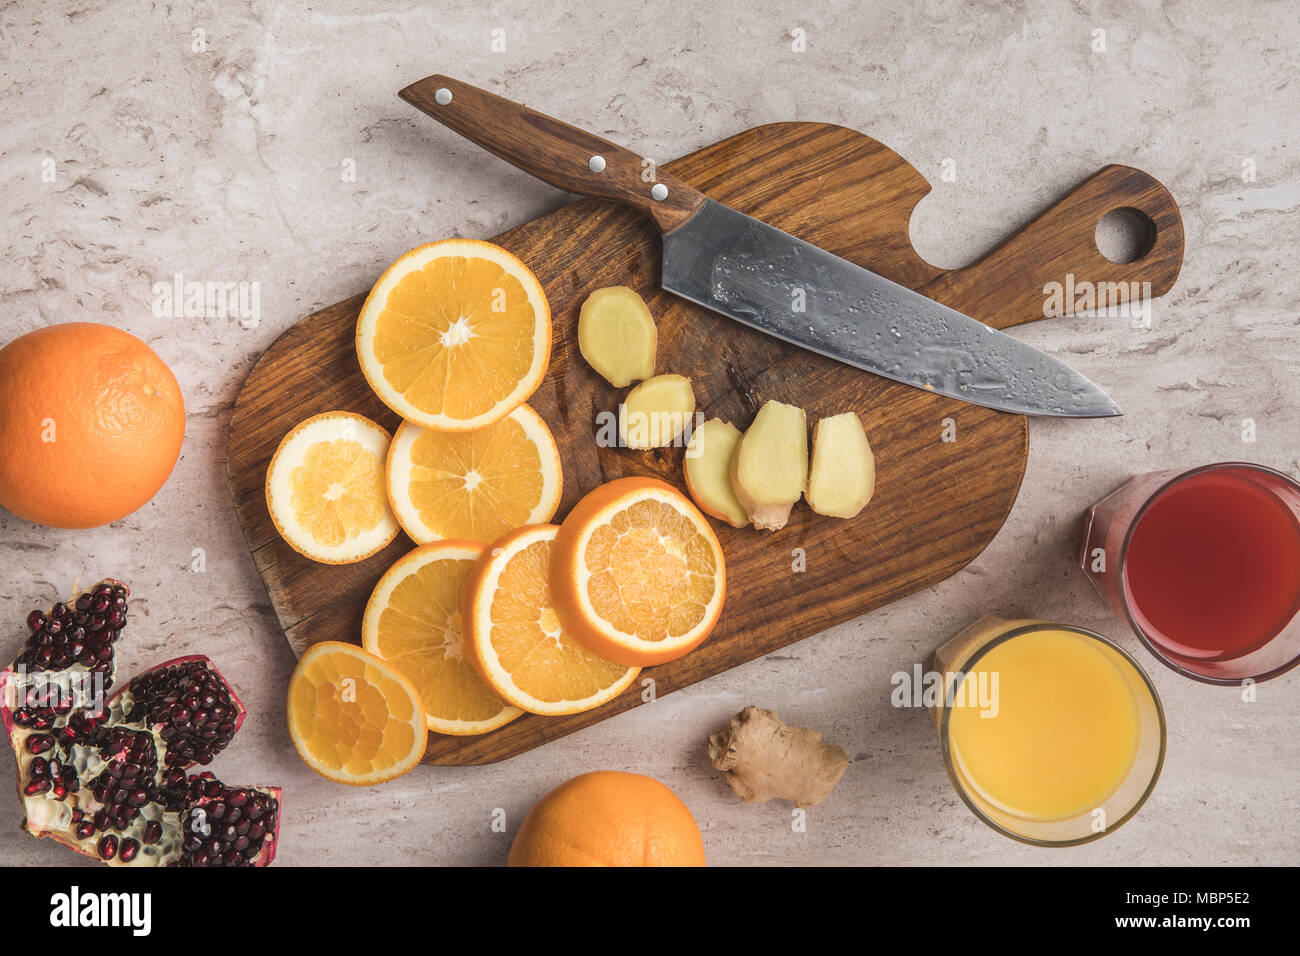 top view of cut oranges, ginger and pomegranate with homemade juices on table - Stock Image